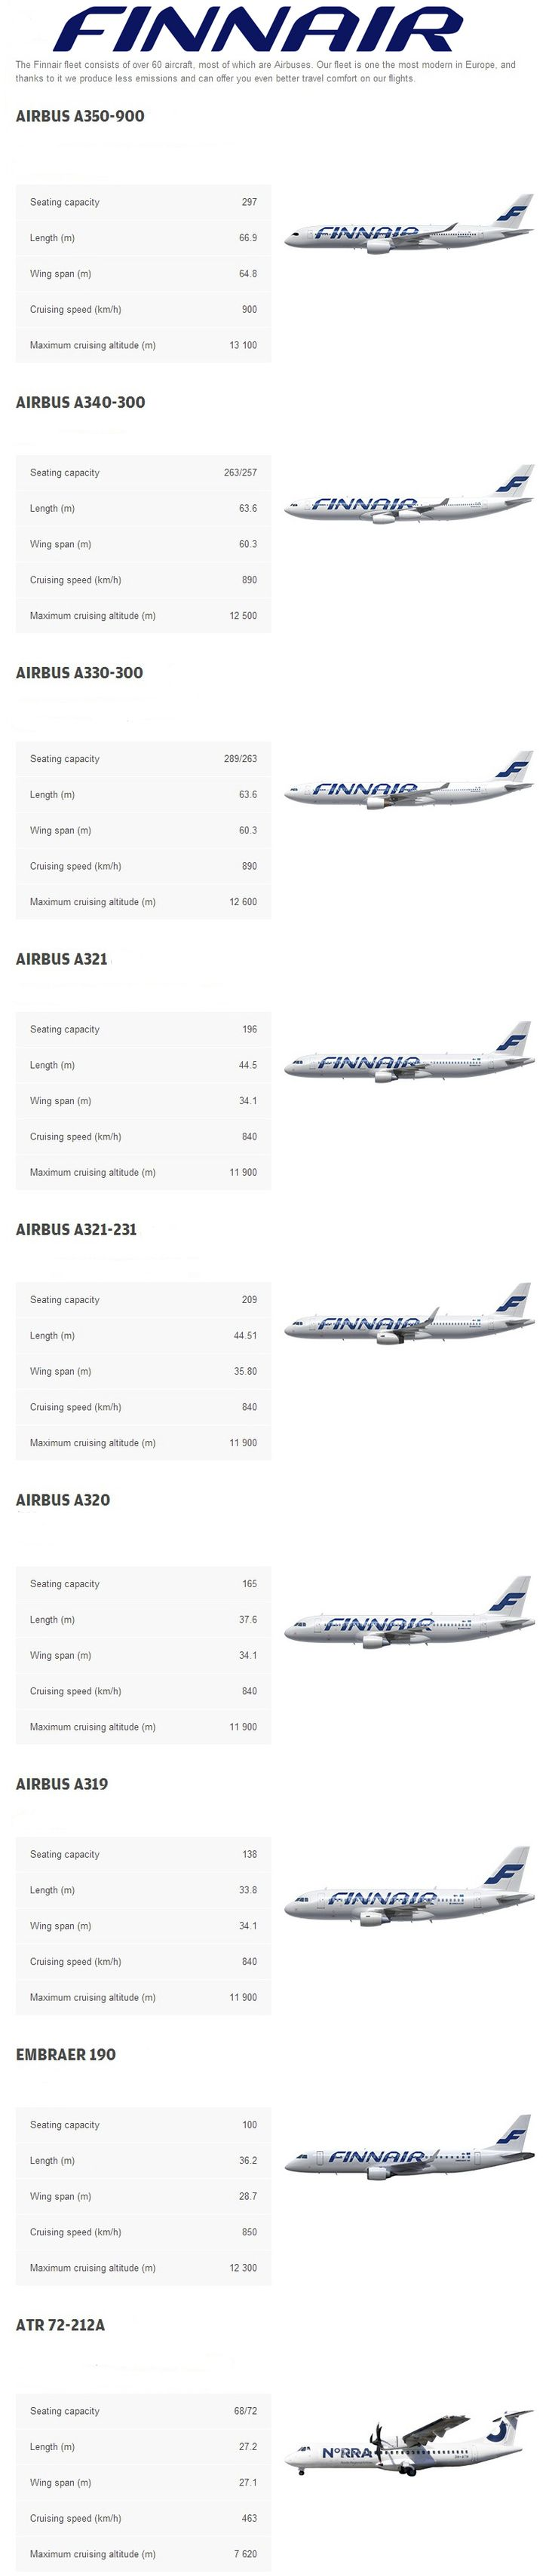 Finnair fleet 2016